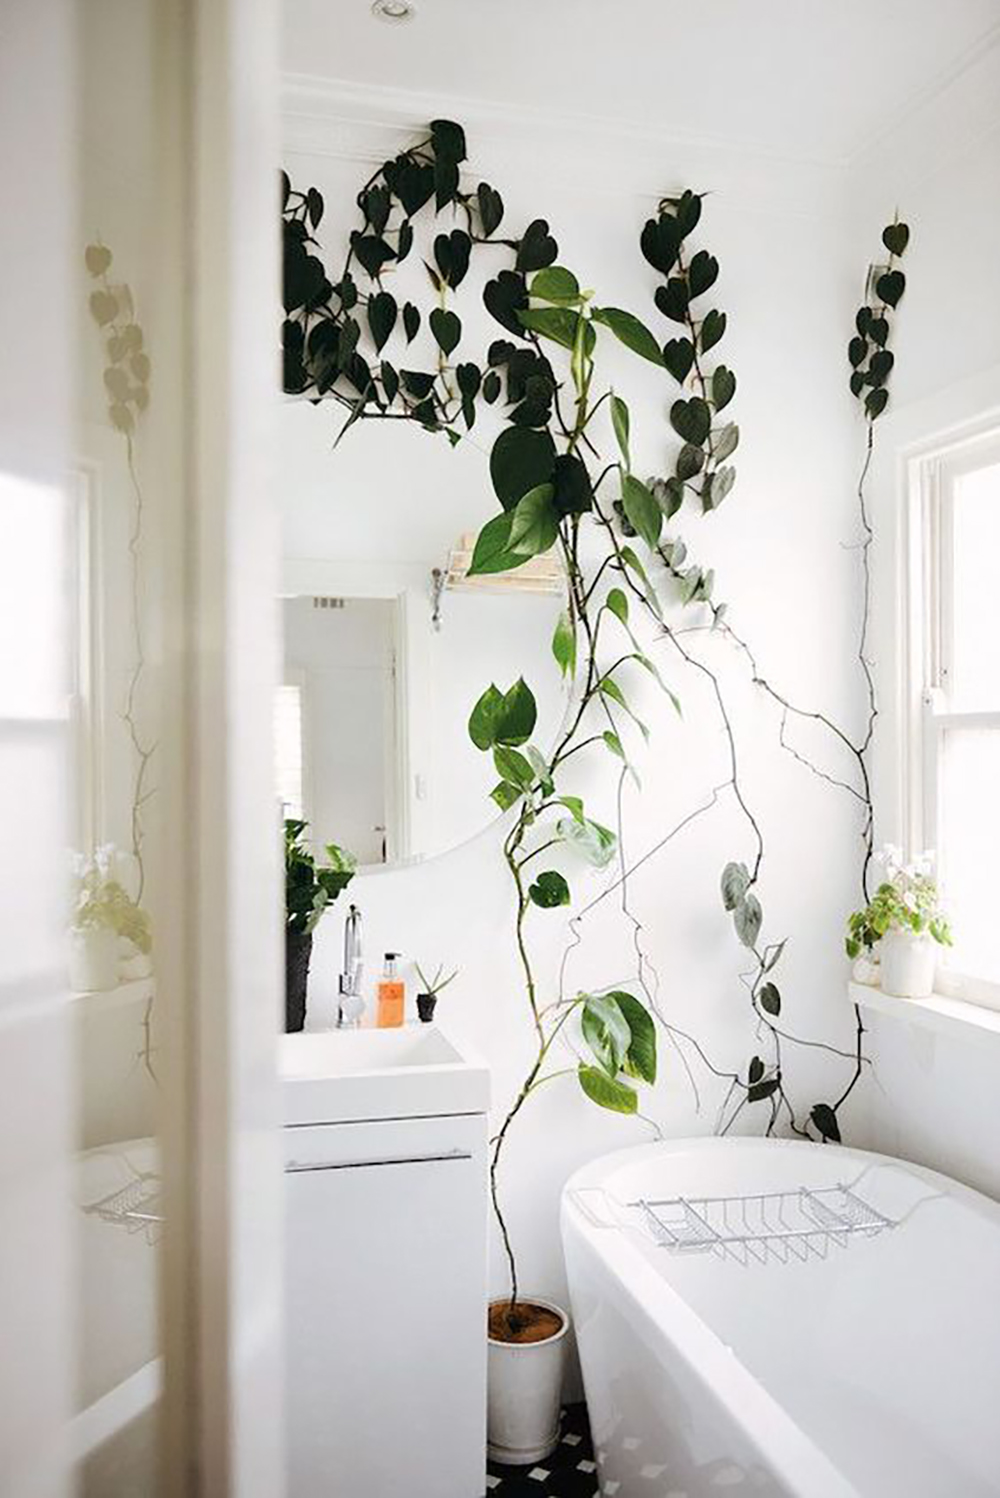 I've been loving the idea of big or many plants in a bathroom. Our own bathroom doesn't really have a lot of space for extras but I've added some ...